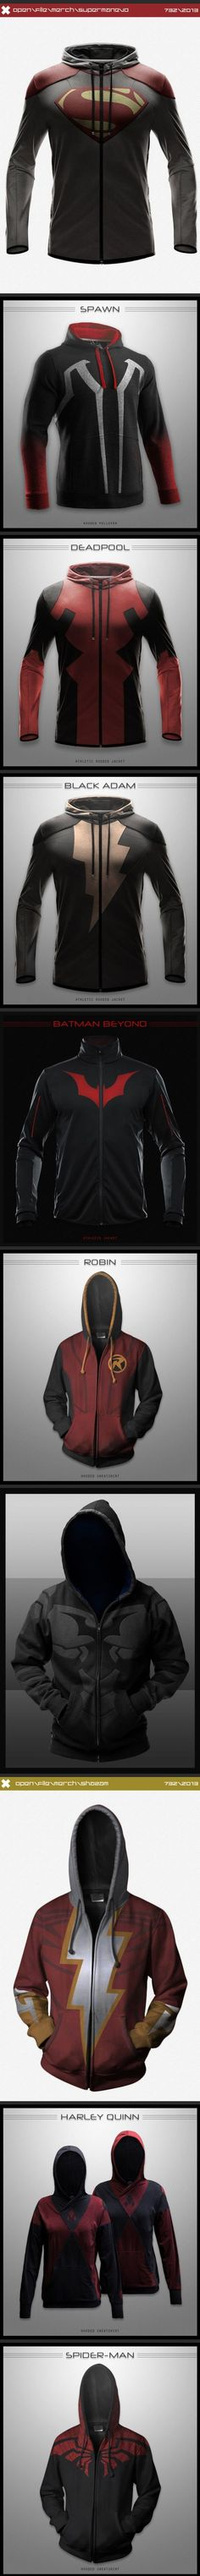 The coolest hoodies you'd love to own. I need the Deadpool and Spider-Man hoodies.